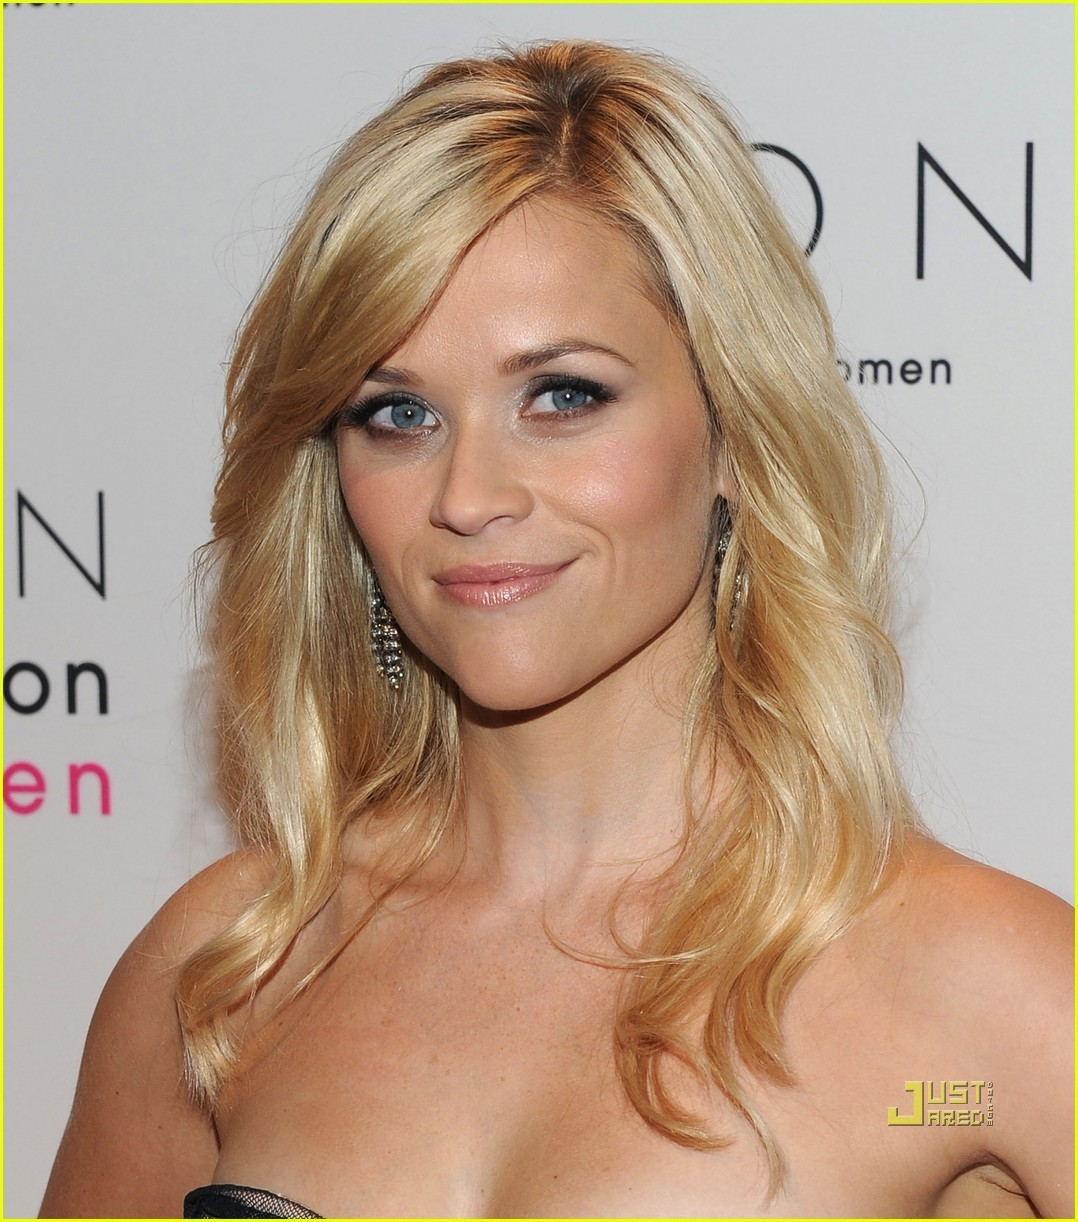 http://2.bp.blogspot.com/-ZfwT21eq3ps/URZQlbnUz8I/AAAAAAAACGs/Xhk7GKfBfQ0/s1600/Reese-Witherspoon-Avon-Foundation-for-Women-Gala-reese-witherspoon-16549499-1078-1222.jpg